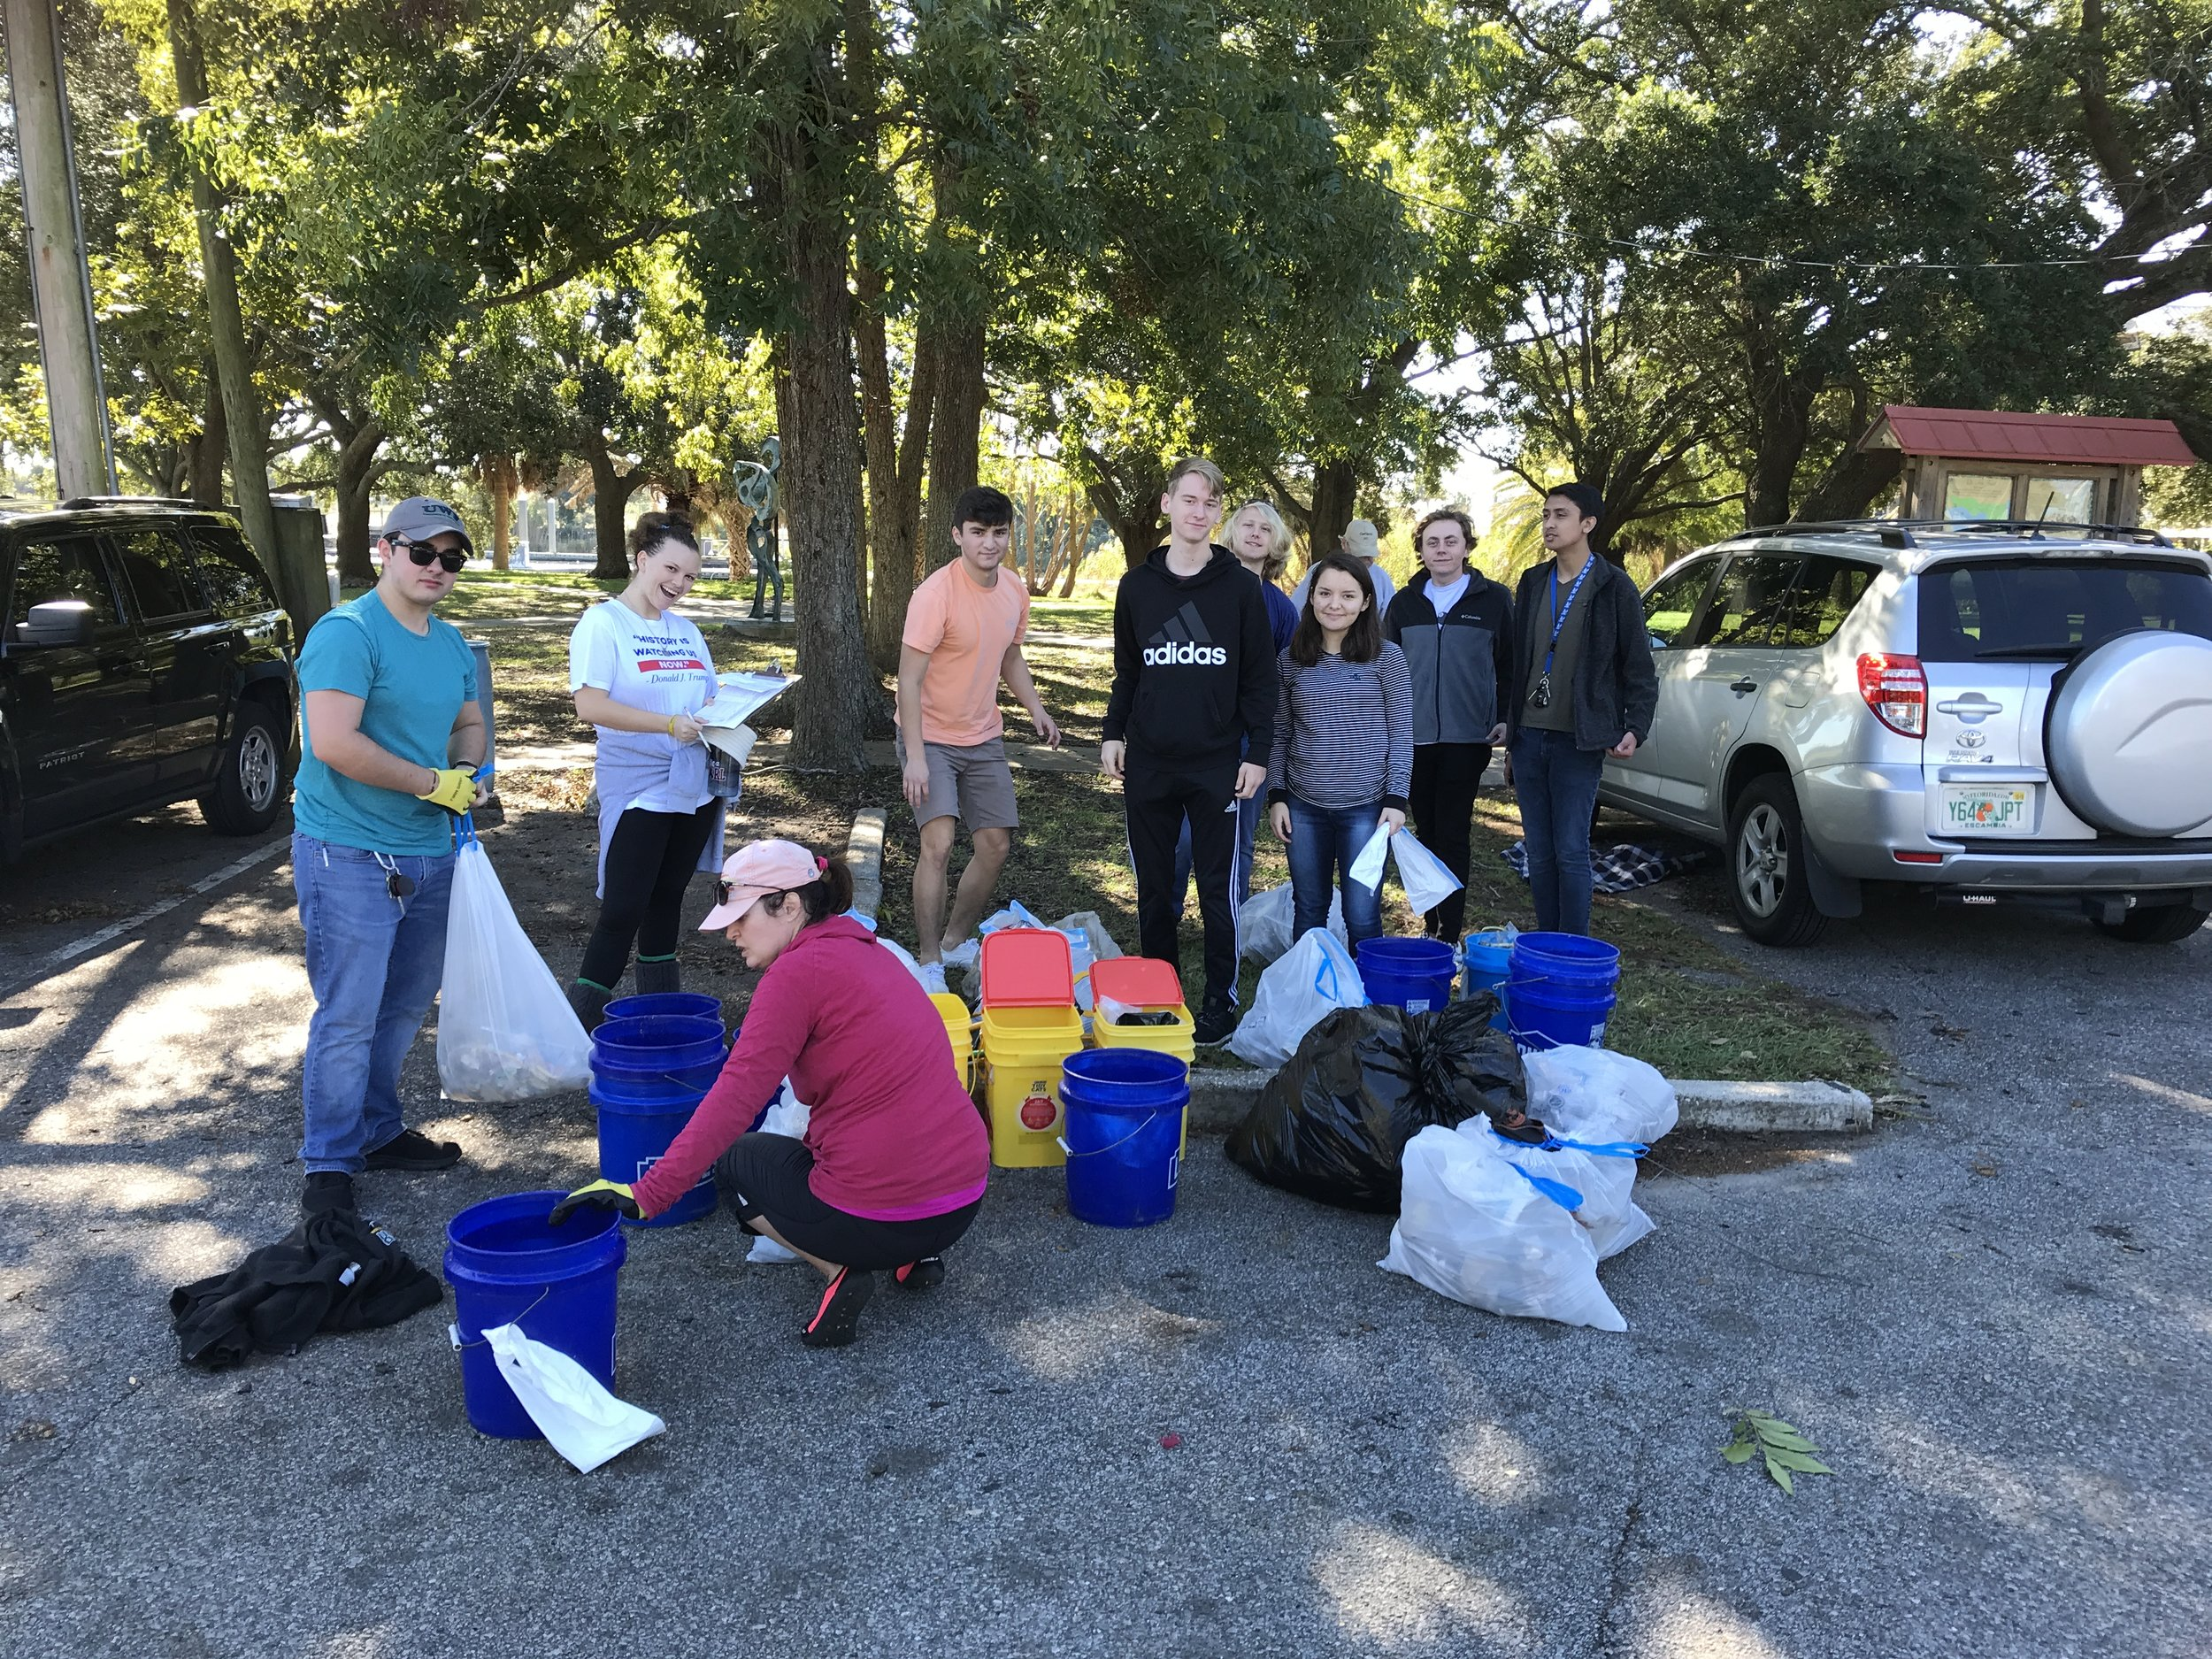 - 607 lbs was collected by a total of 44 volunteers in ONE Hour at Pensacola Visitor Center/Graffiti Bridge and Bartram Park. Thanks to several UWF and Escambia HS students for pitching in